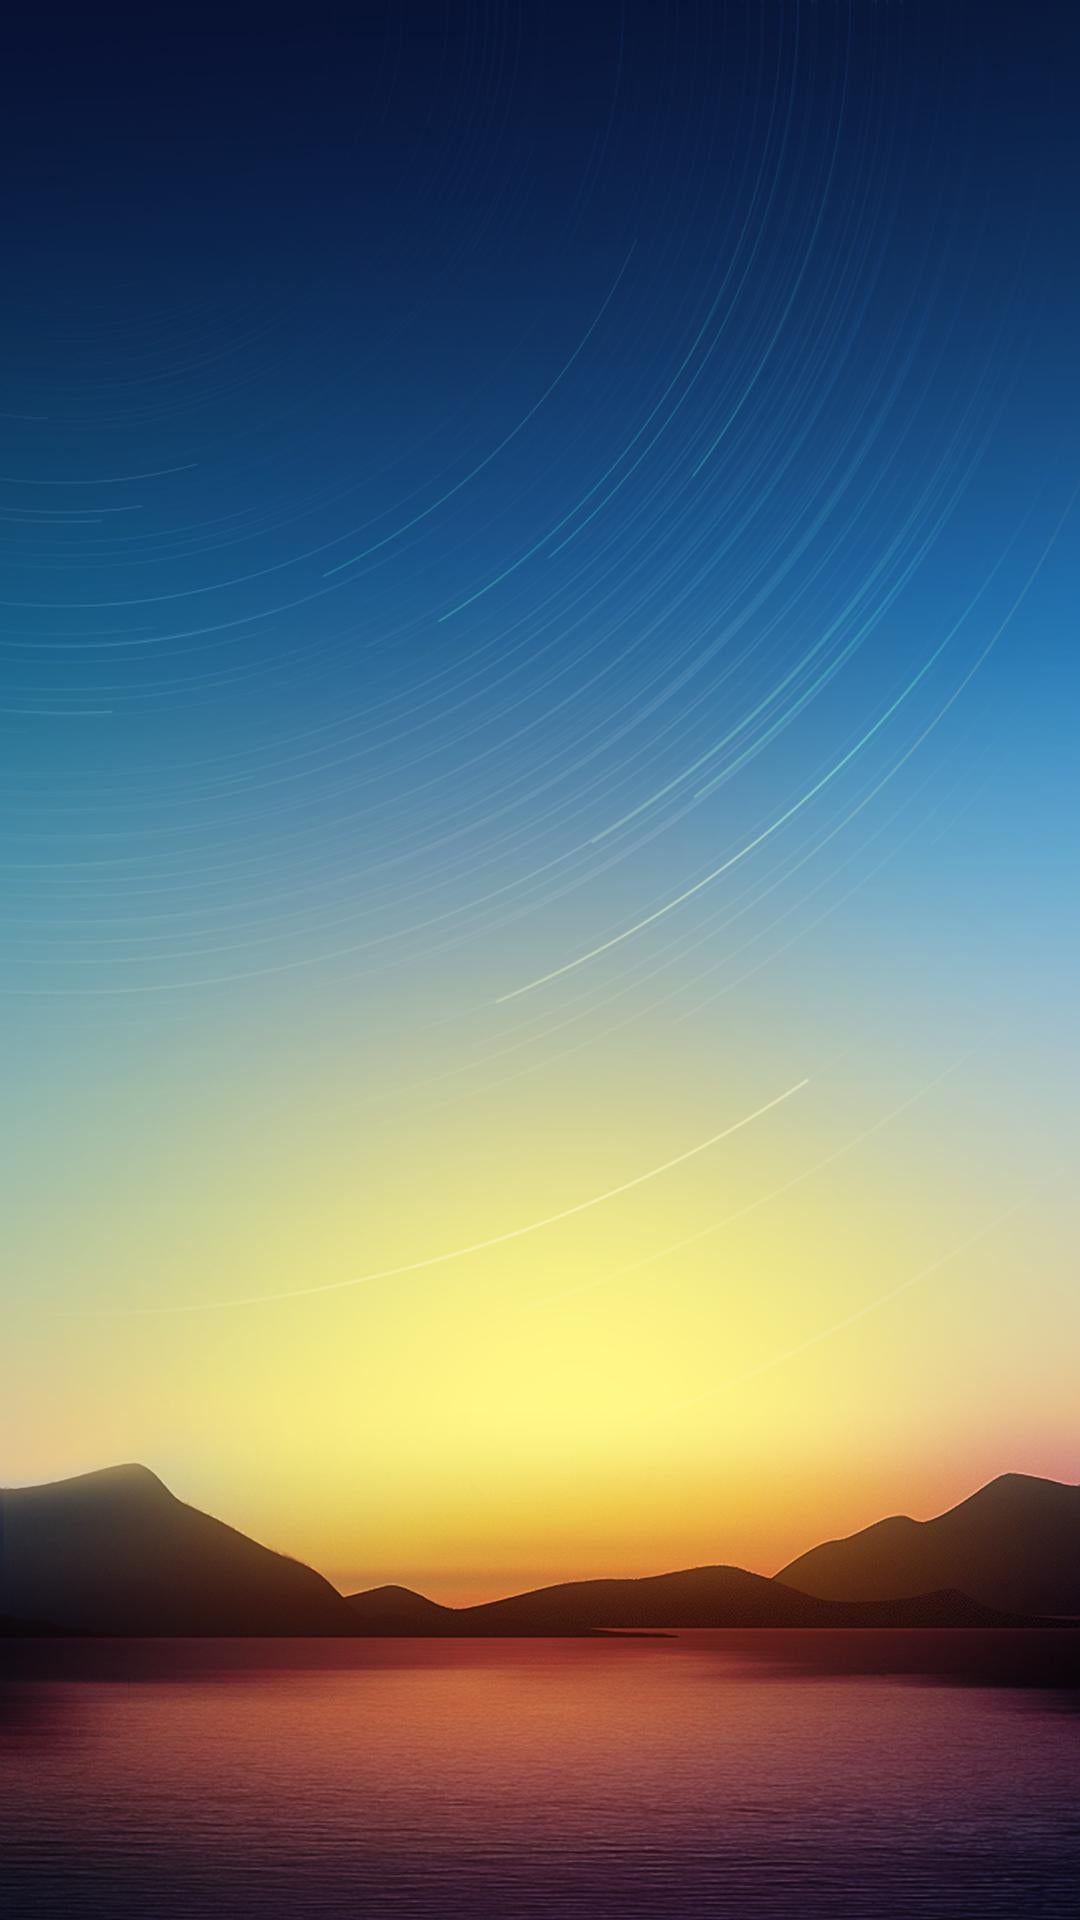 Upgrade Your Screen Size with These Large Phone Wallpapers